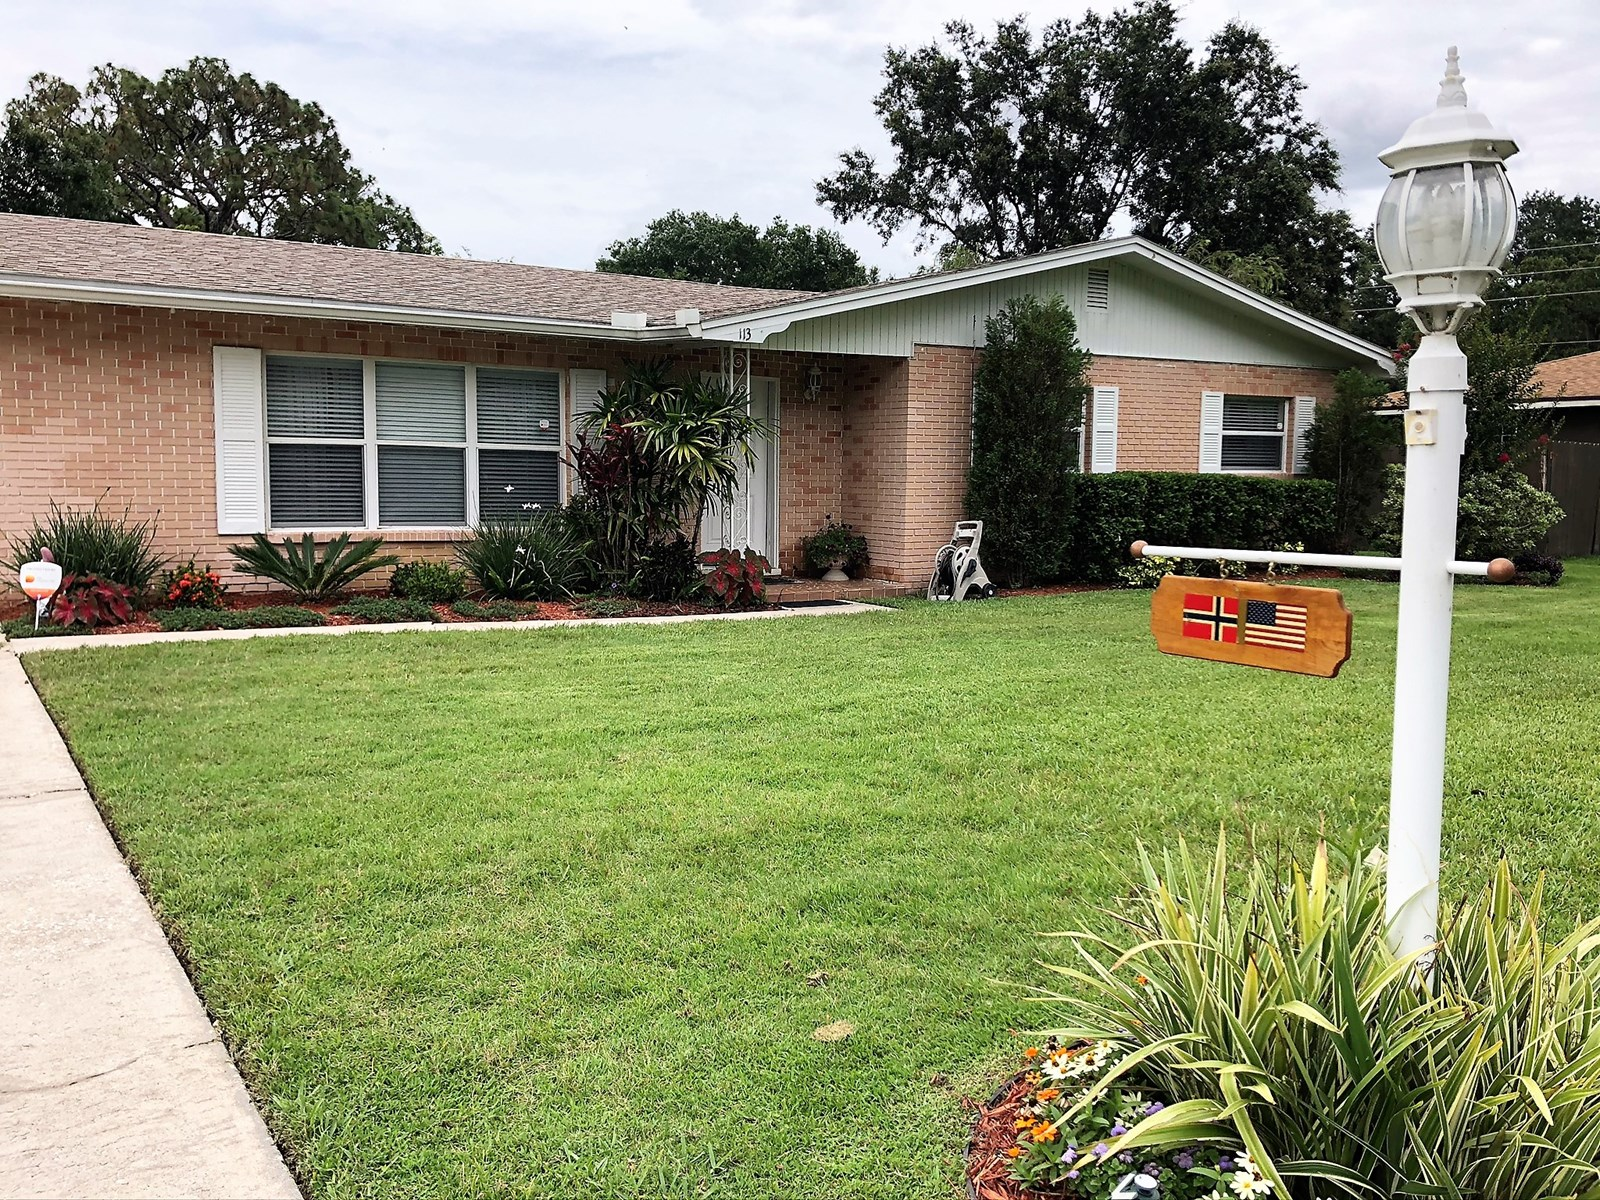 3/2 HOME FOR SALE, LAKELAND FL, UPDATED, PRIME LOCATION!